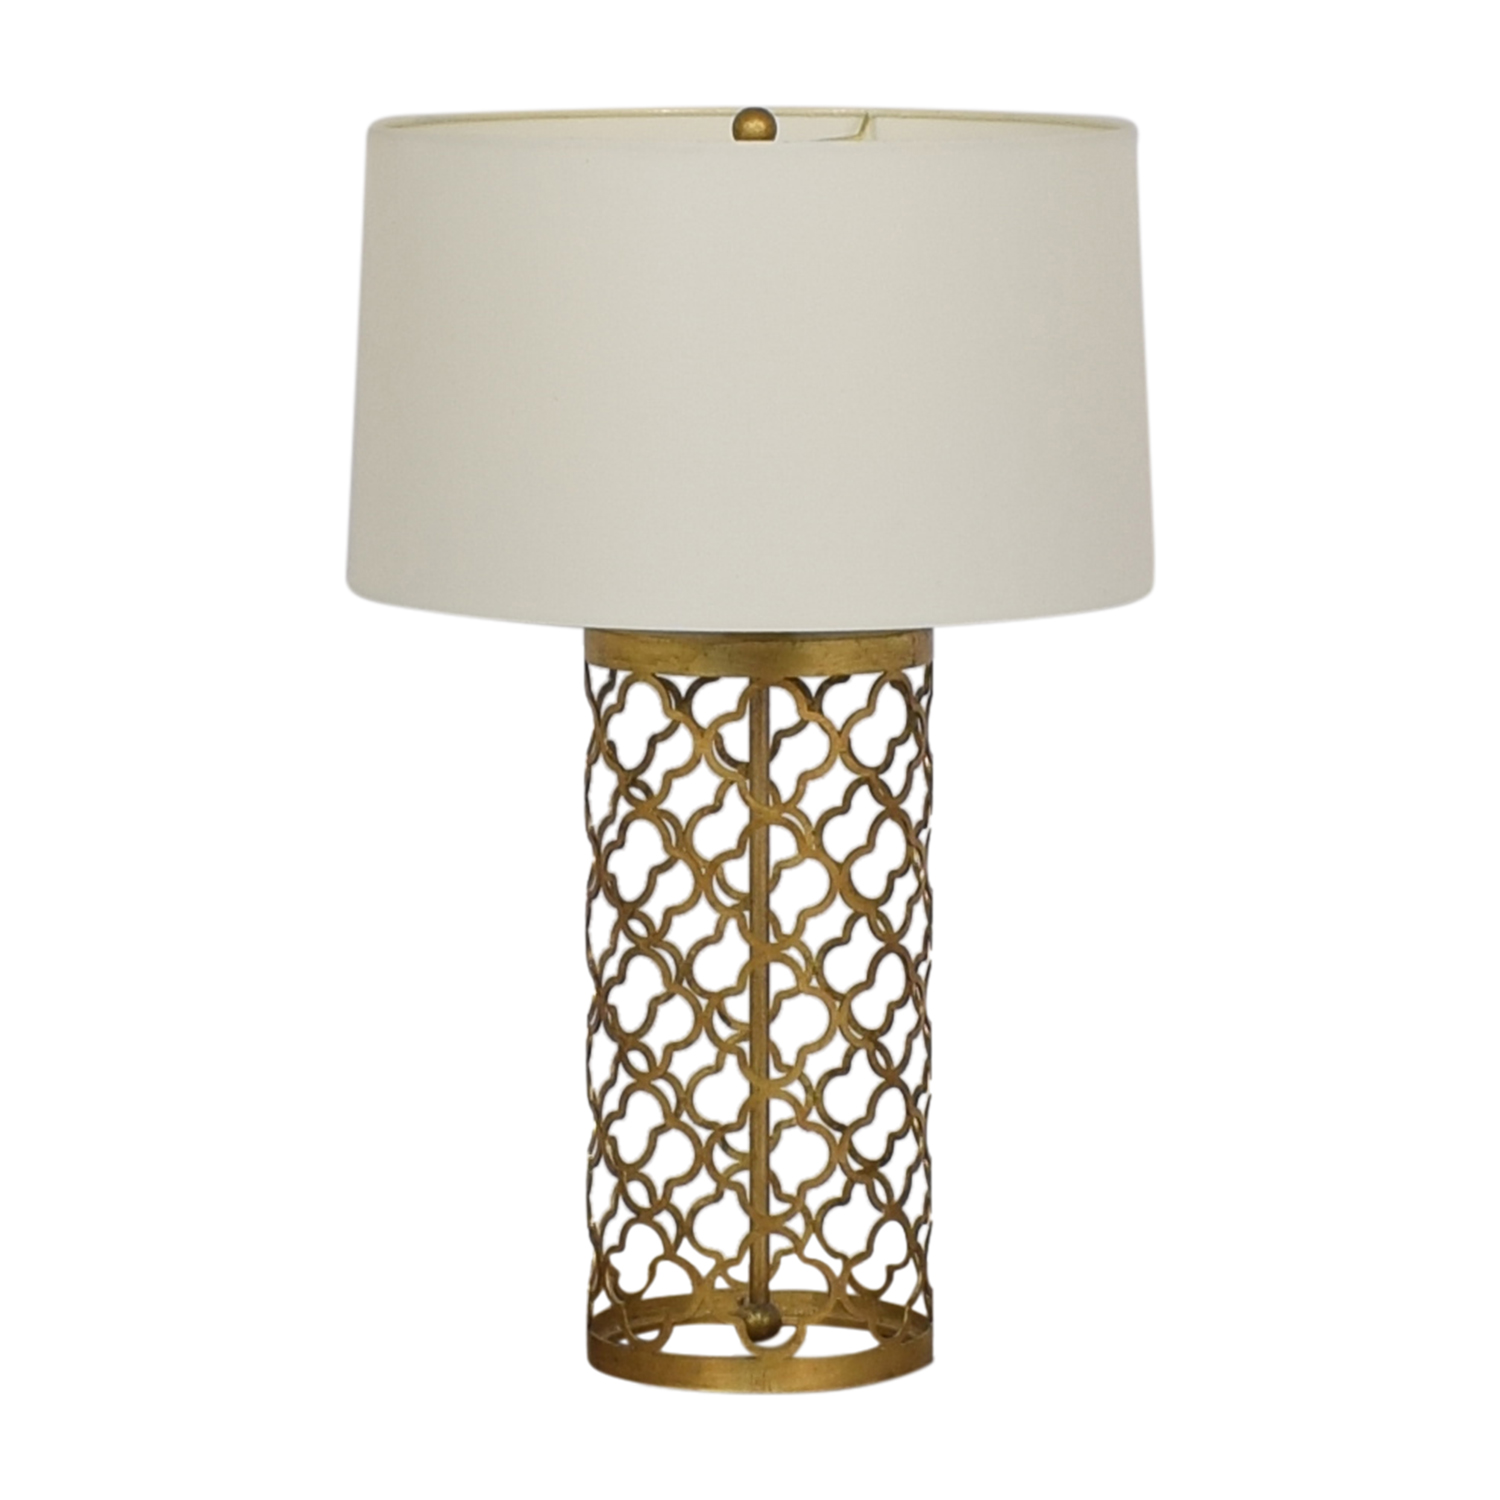 shop Regina Andrew Mosaic Drum Table Lamp Regina Andrew Lamps